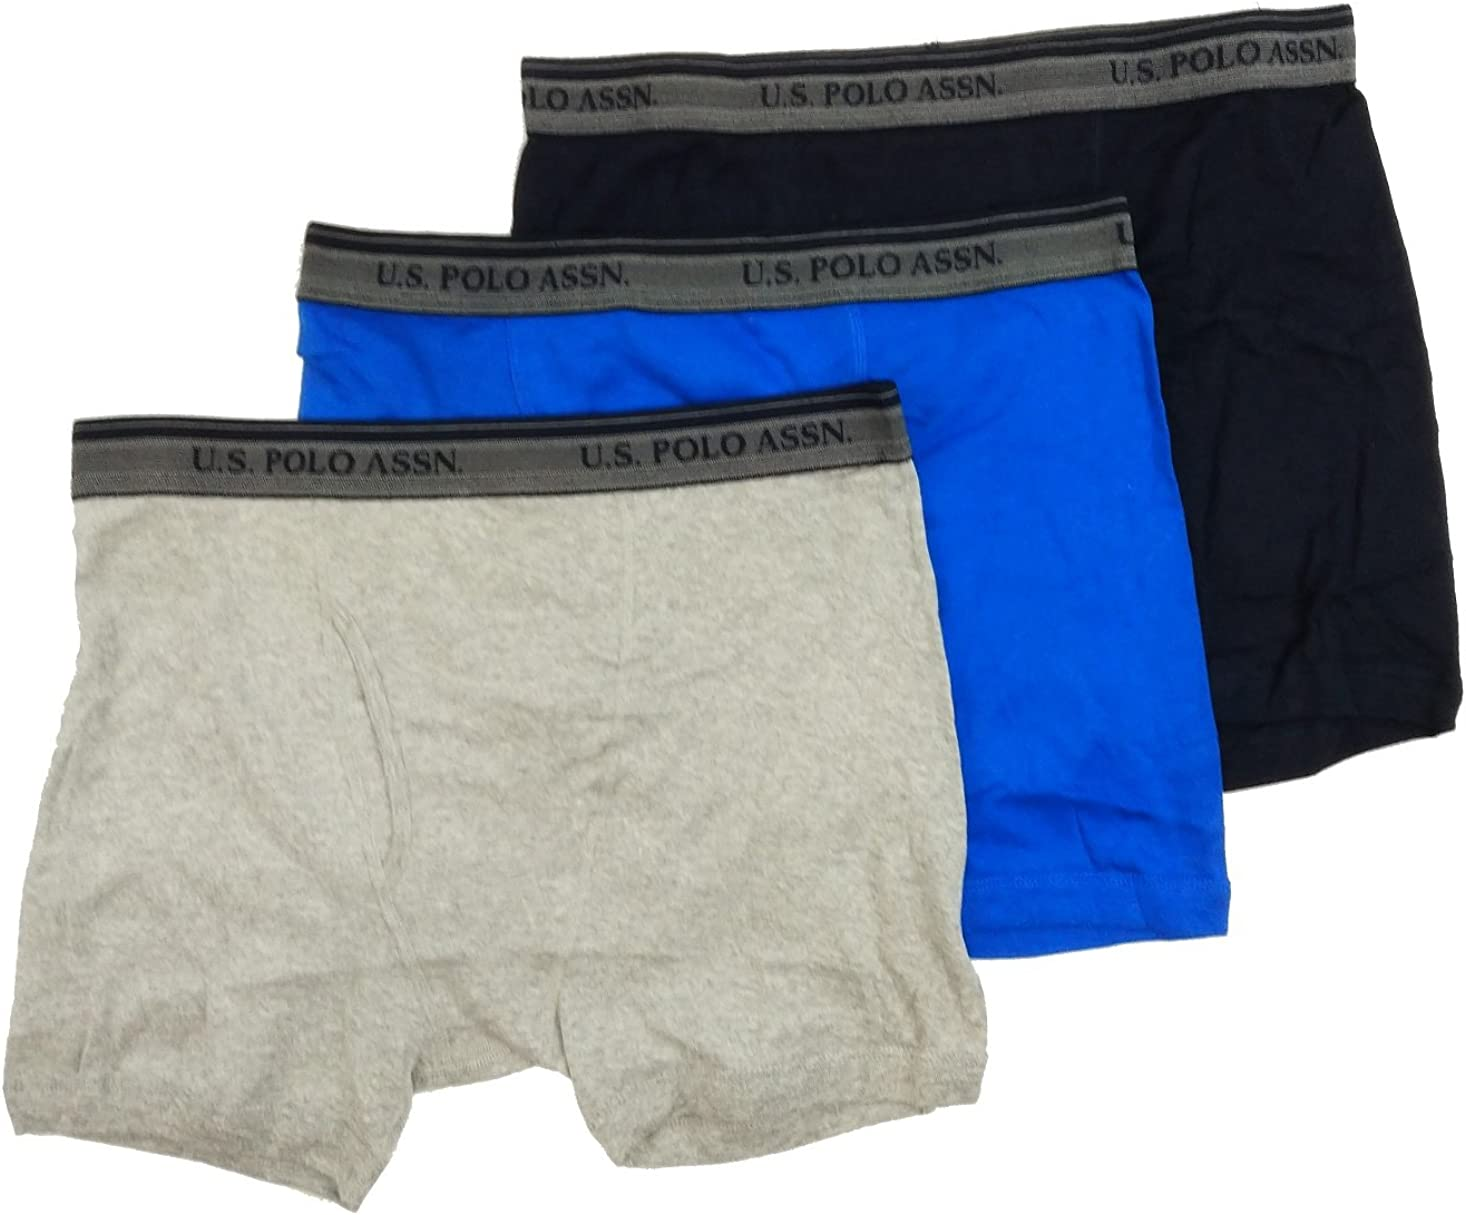 U.S Polo Assn 3 Pack Cotton Boxer Brief